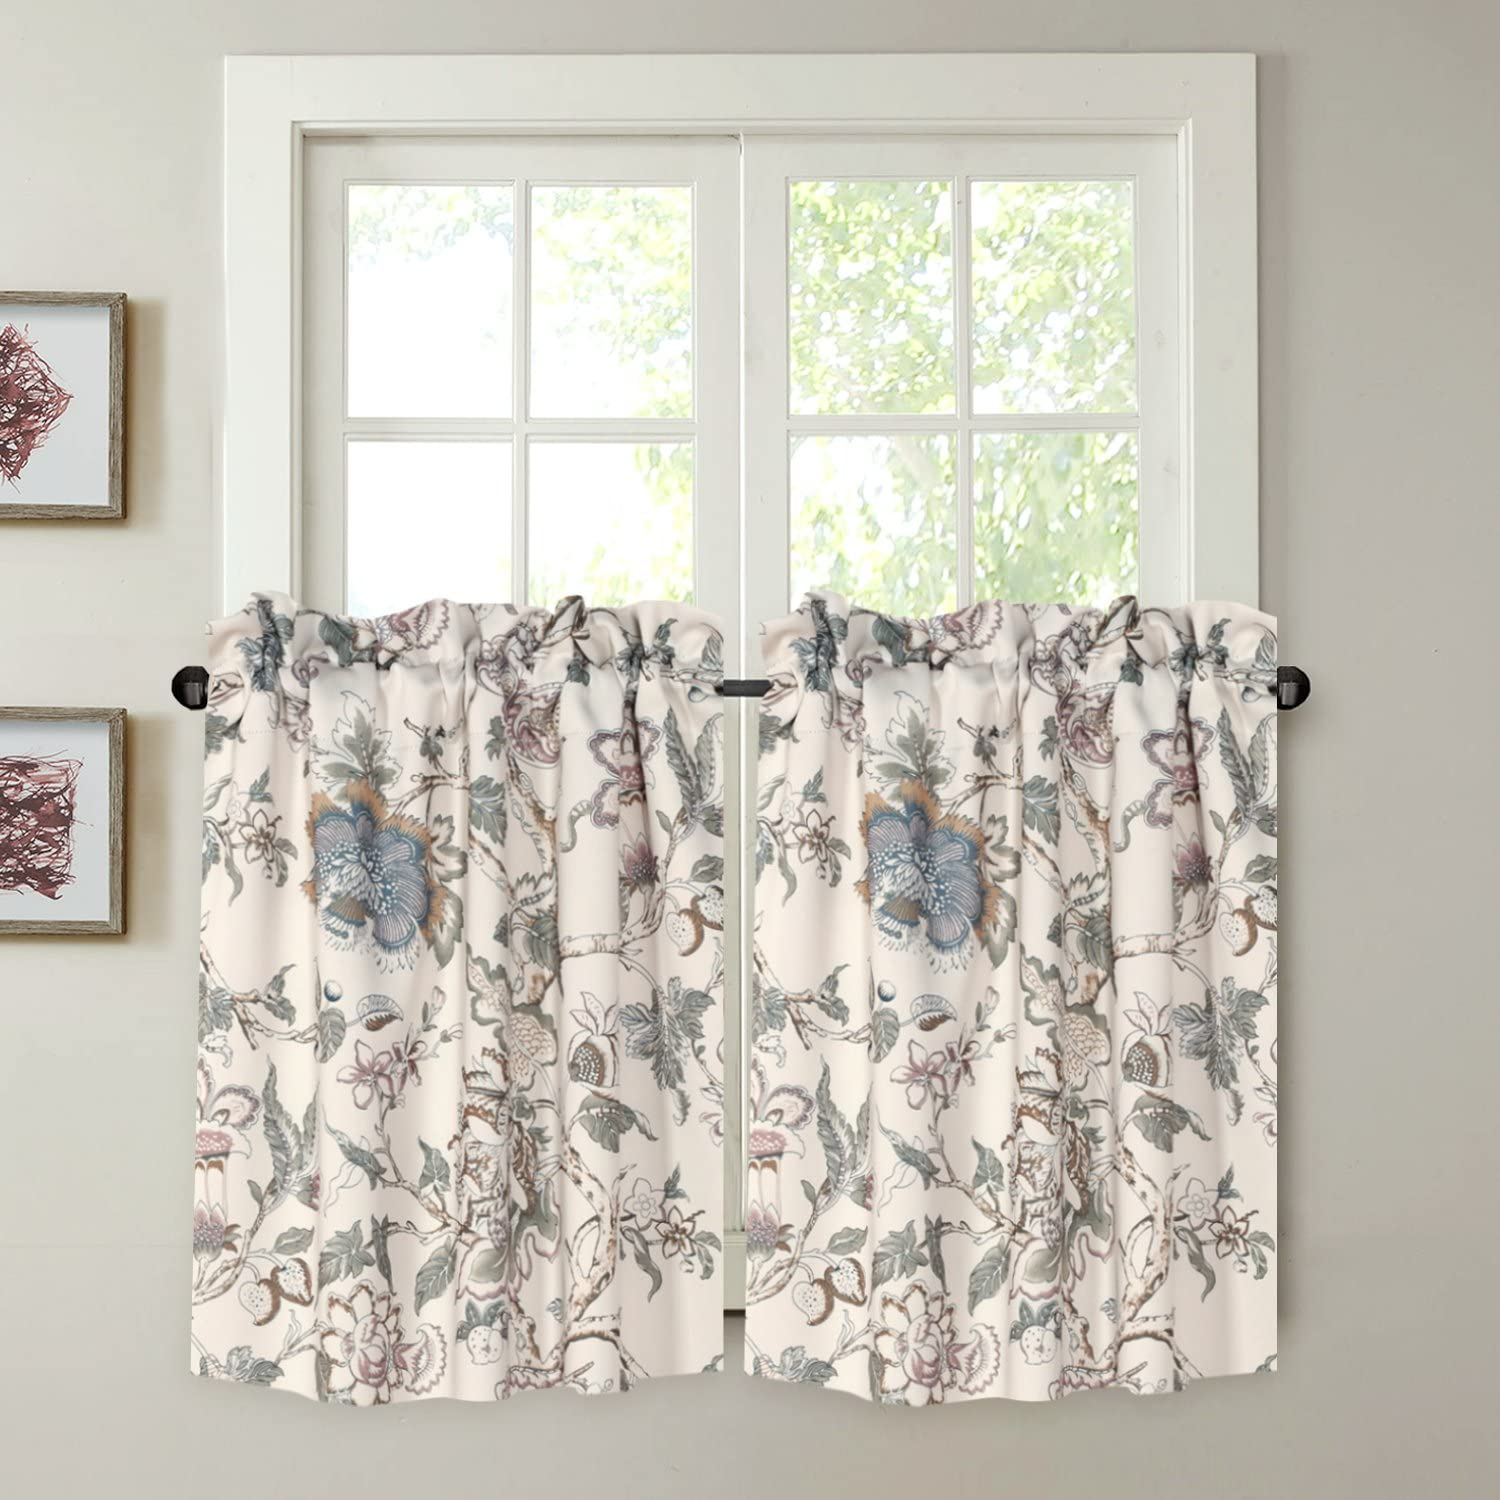 """H.VERSAILTEX Energy Smart Room Darkening Rod Pocket Blackout Curtain Tier Panels Small Window Curtains Multi Size - Vintage Floral Pattern in Sage and Brown - (58"""" W x 24"""" L Pair of Tiers)"""